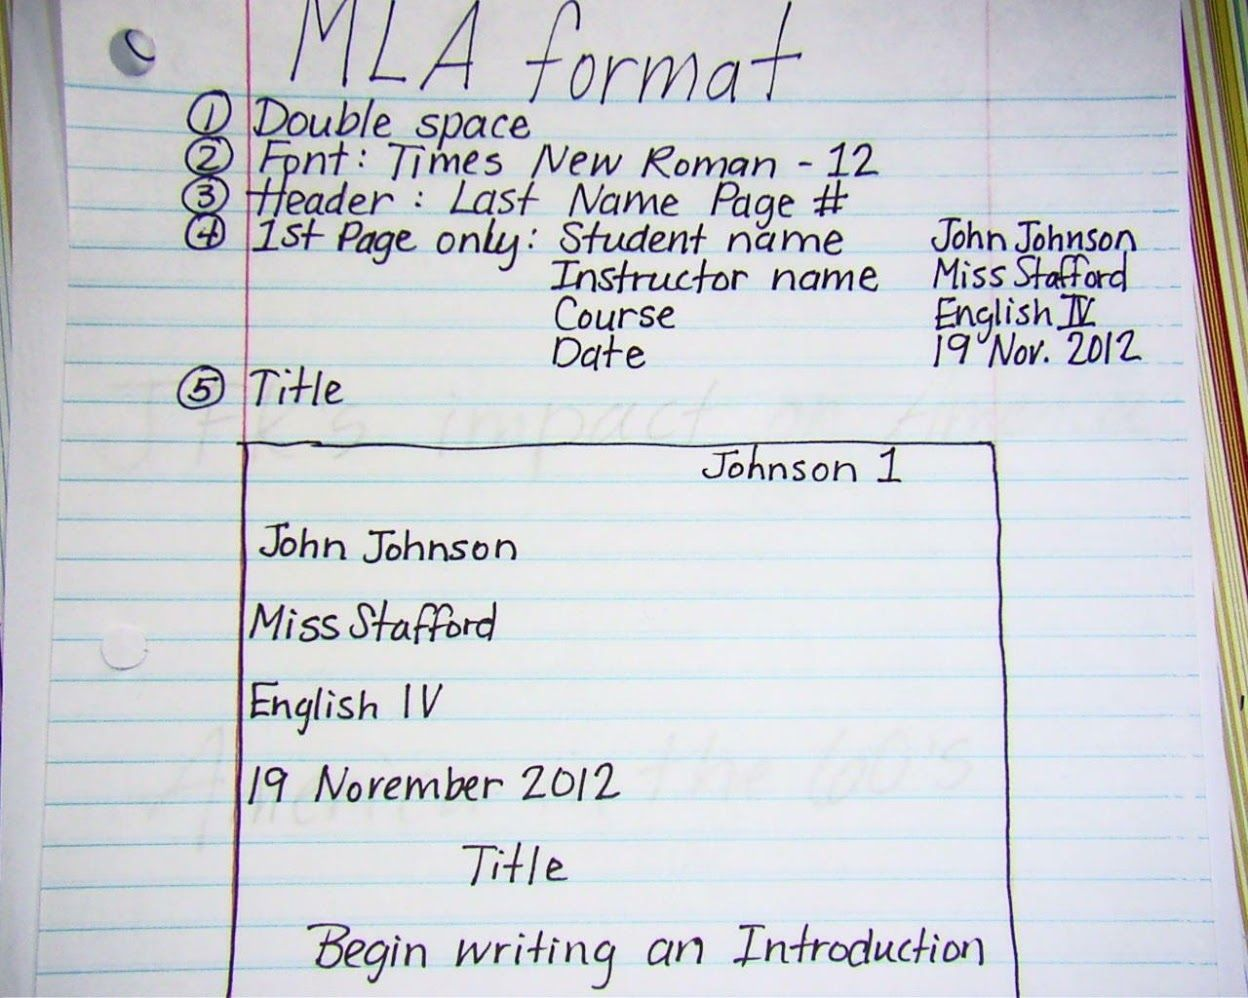 002 high school mla heading format for all assignments